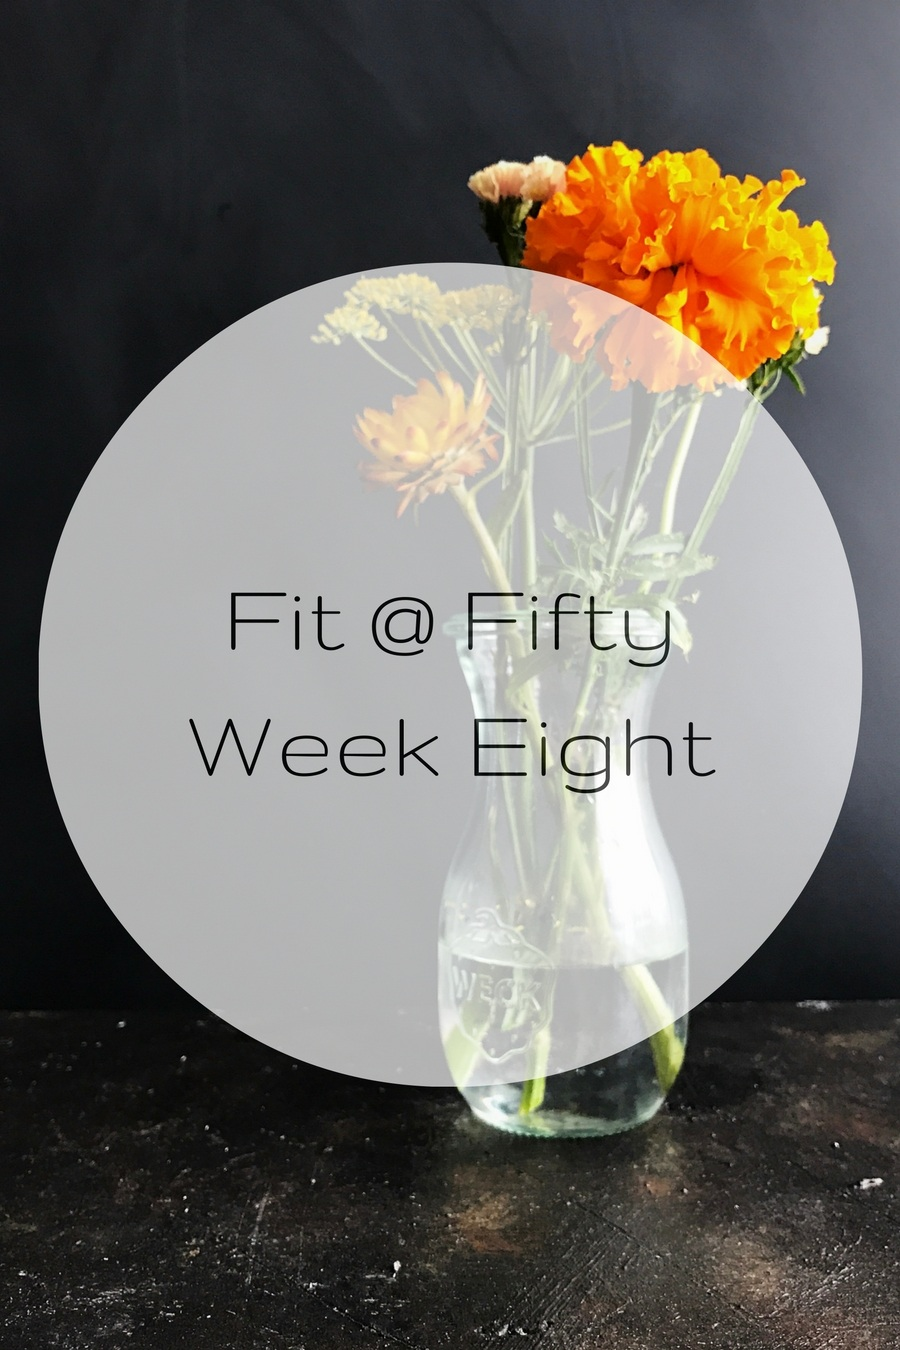 Fifty at Fifty Week Eight